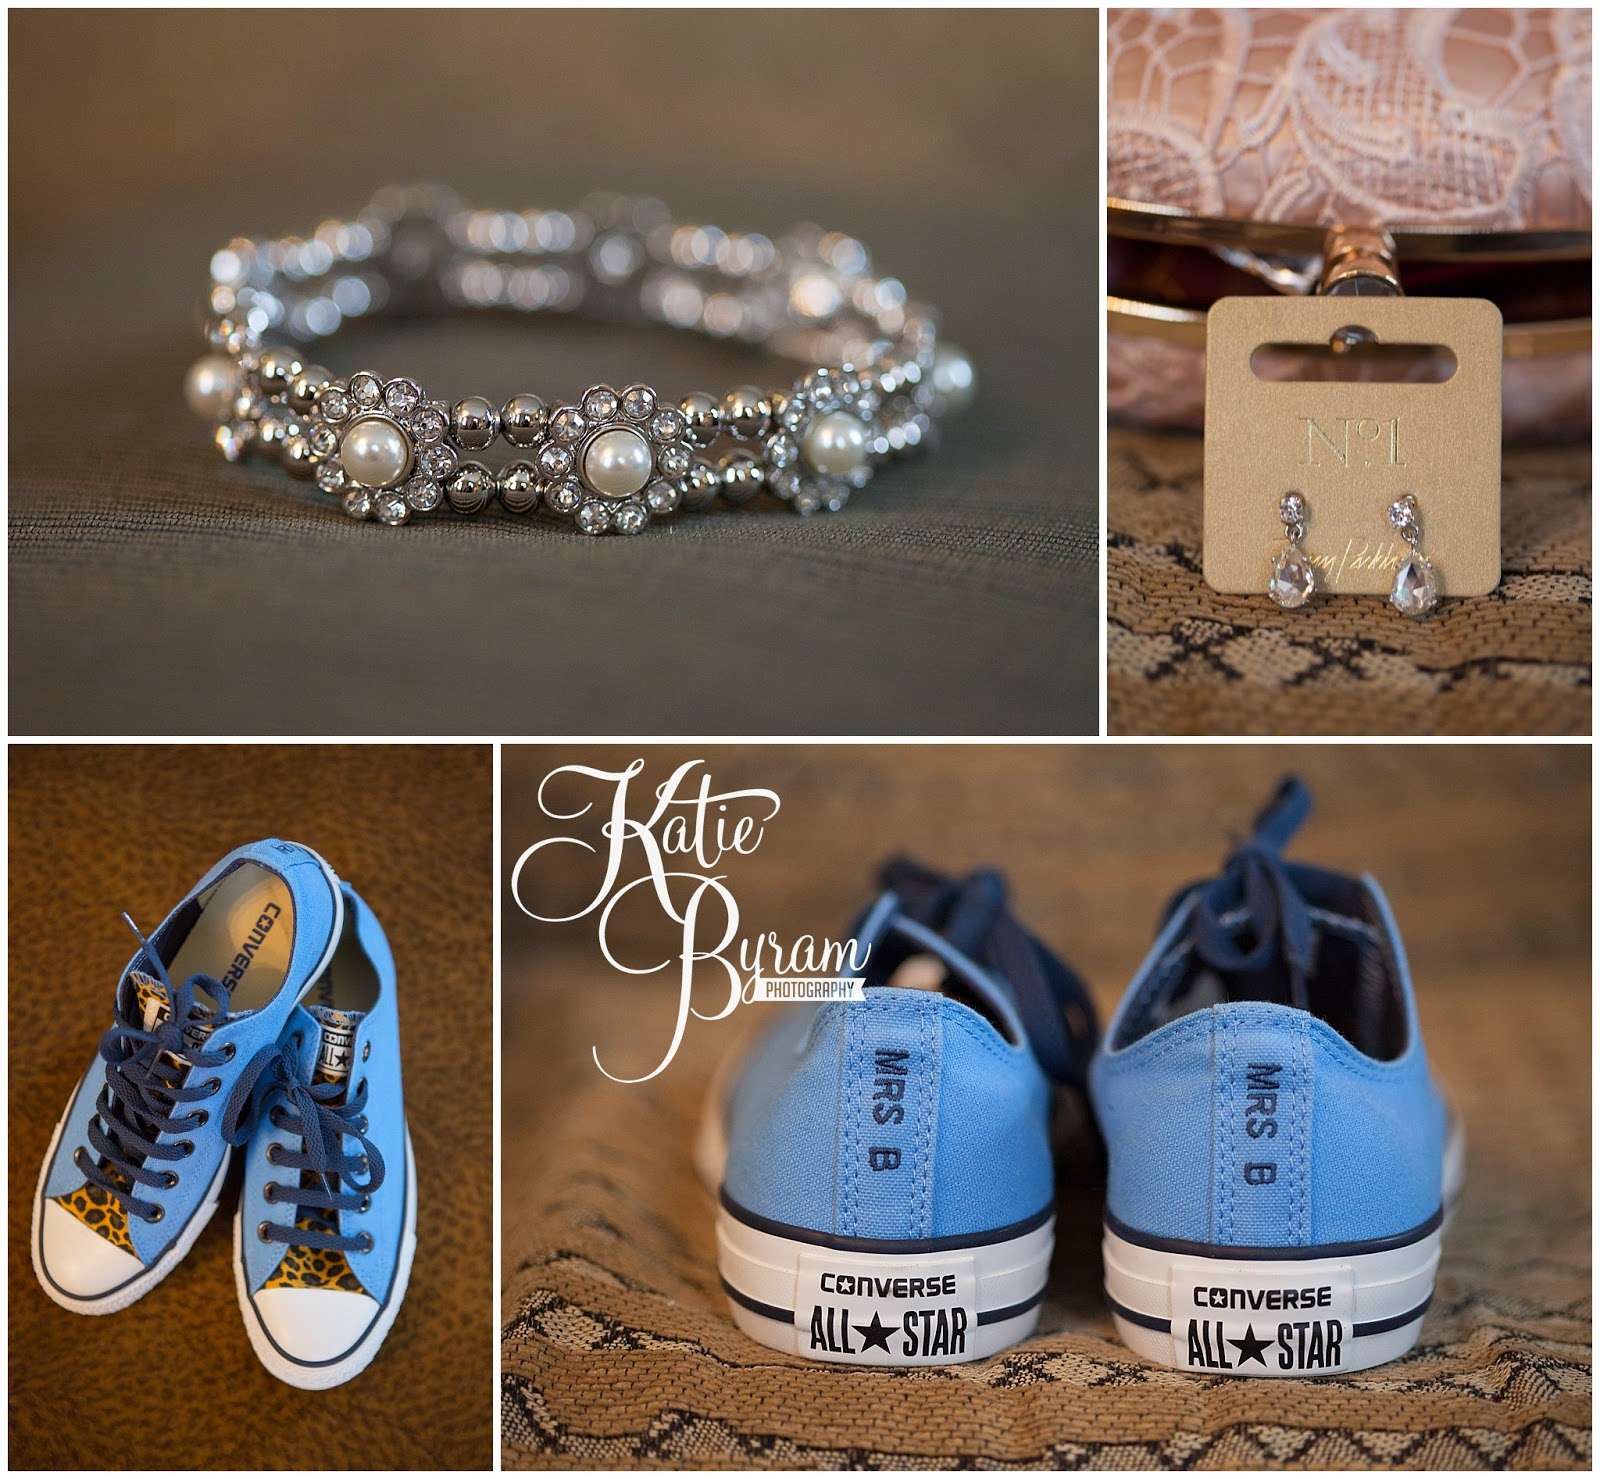 customised wedding converse, wedding converse, newcastle city centre wedding, the vermont hotel,vermont weddings, newcastle wedding venue, katie byram photography, hotel wedding newcastle, quayside, nighttime wedding photographs